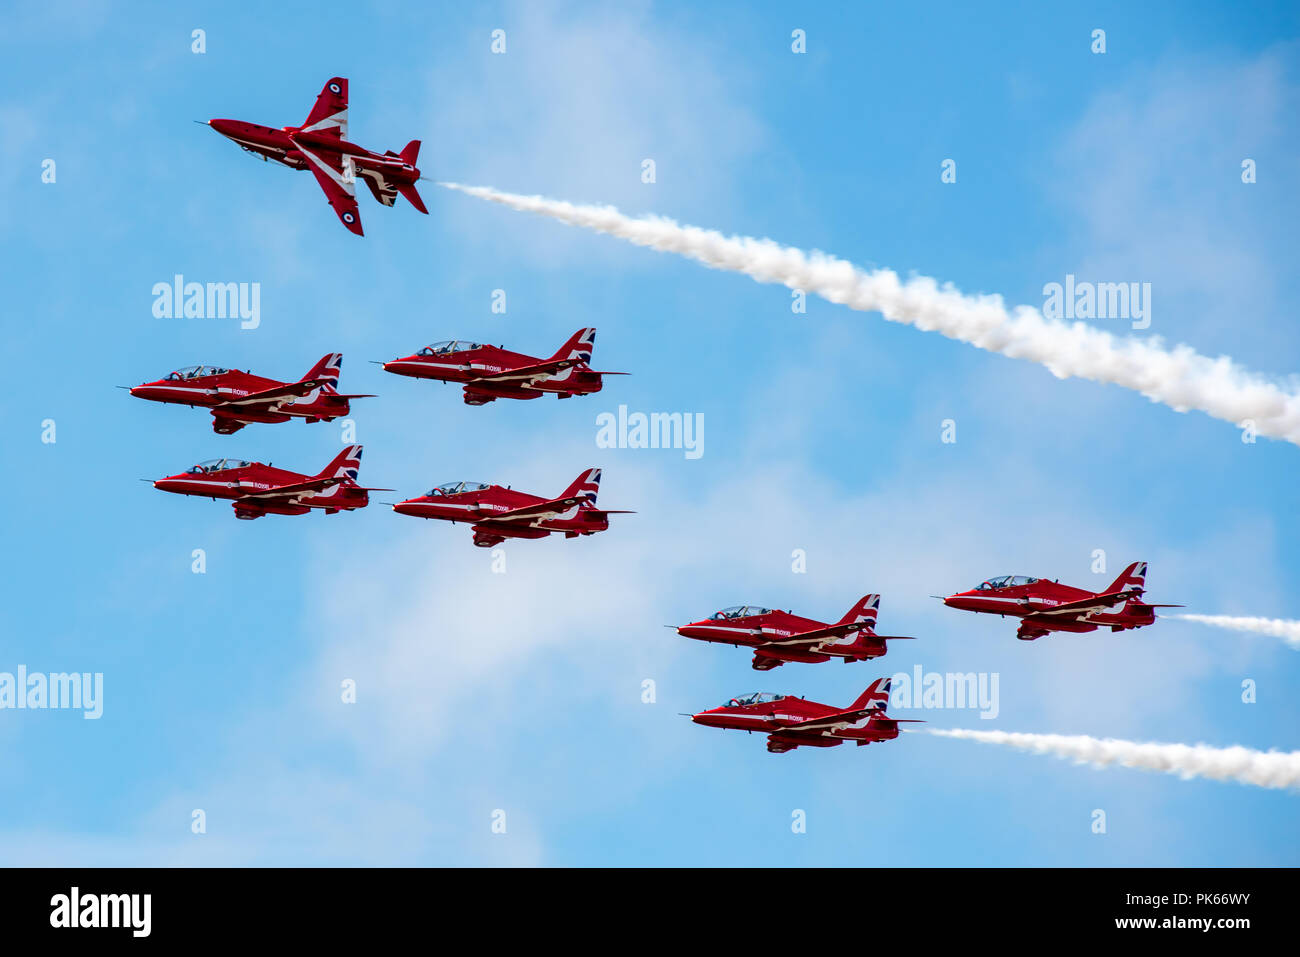 An RAF Red Arrows Hawk jet breaks formation and rolls above his team mates during a display manoeuvre - Stock Image